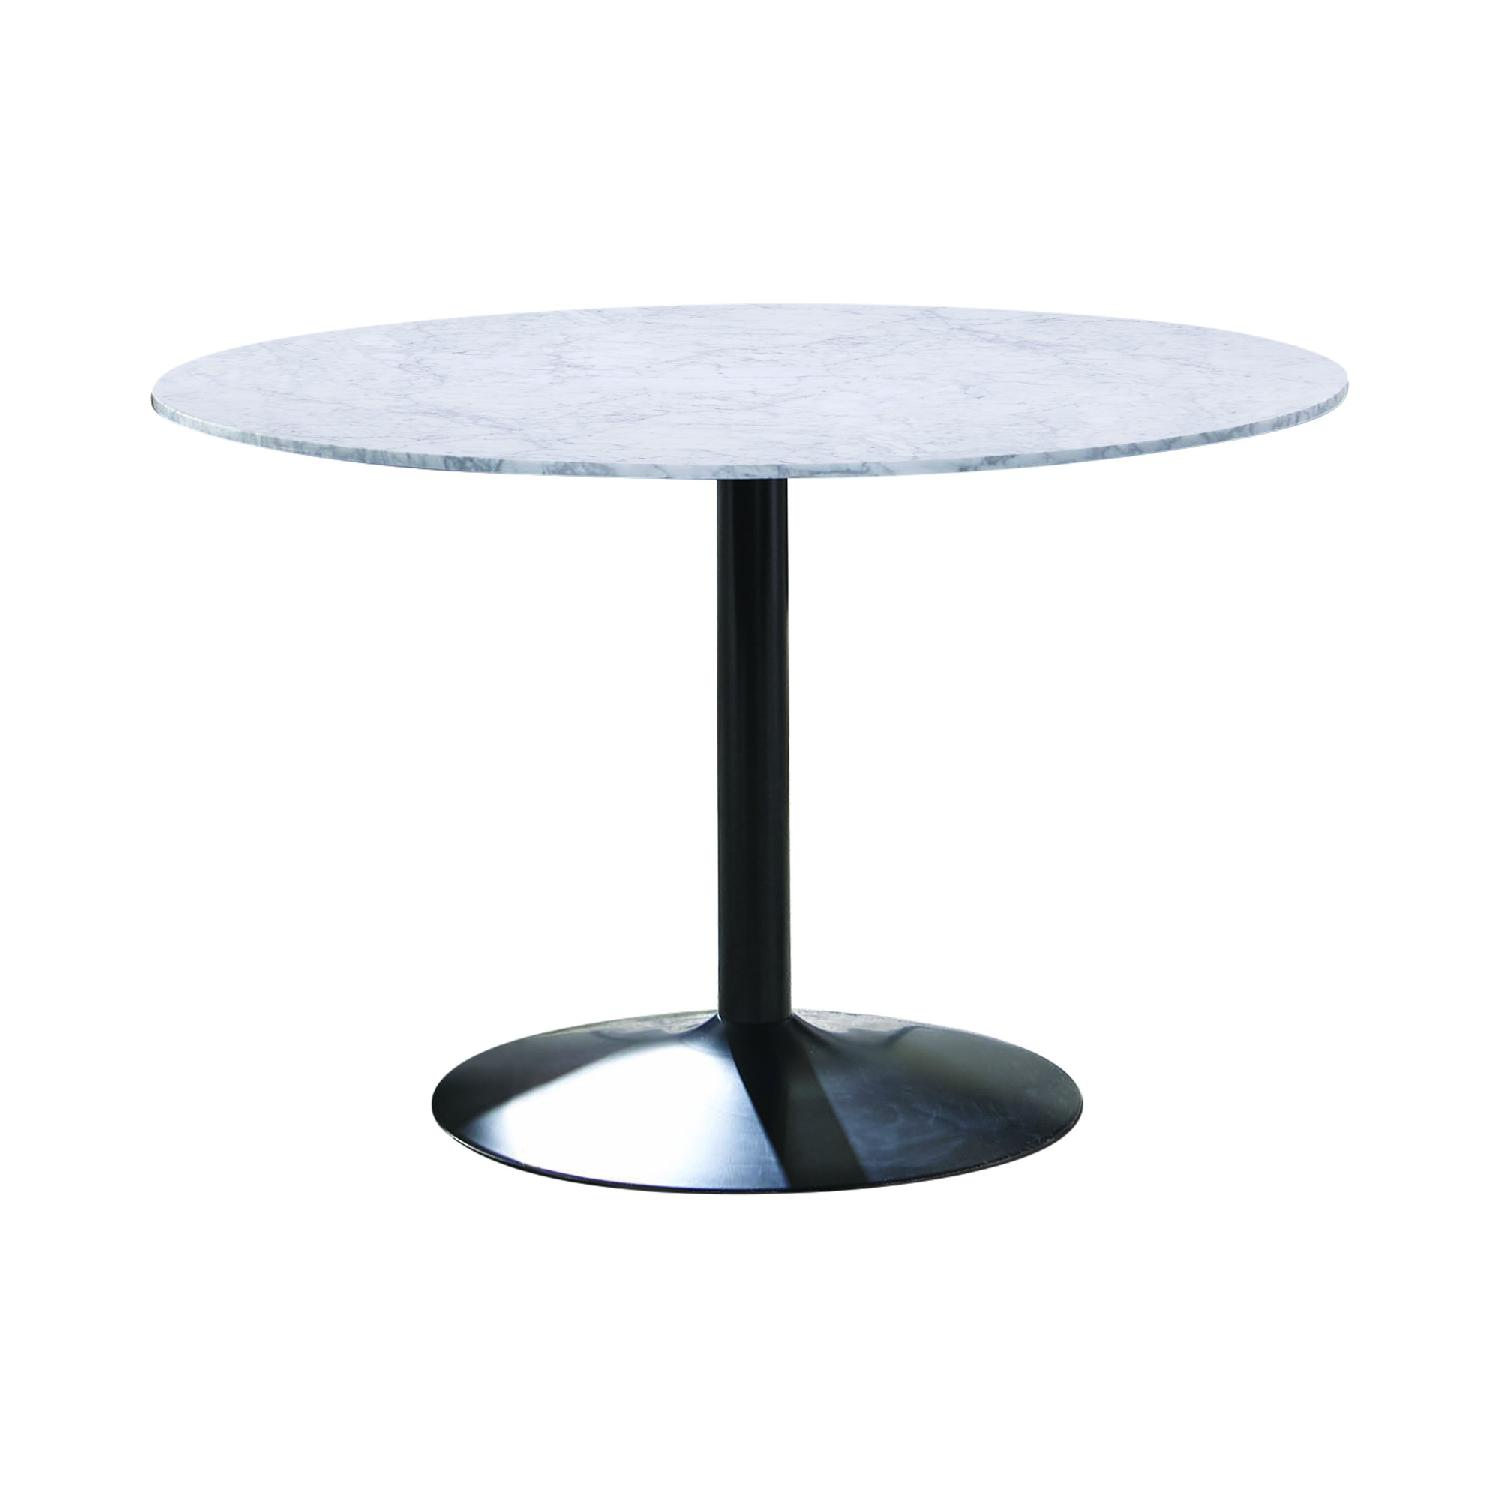 Modern Italian Marble Top Dining Table w/ Black Base - image-1